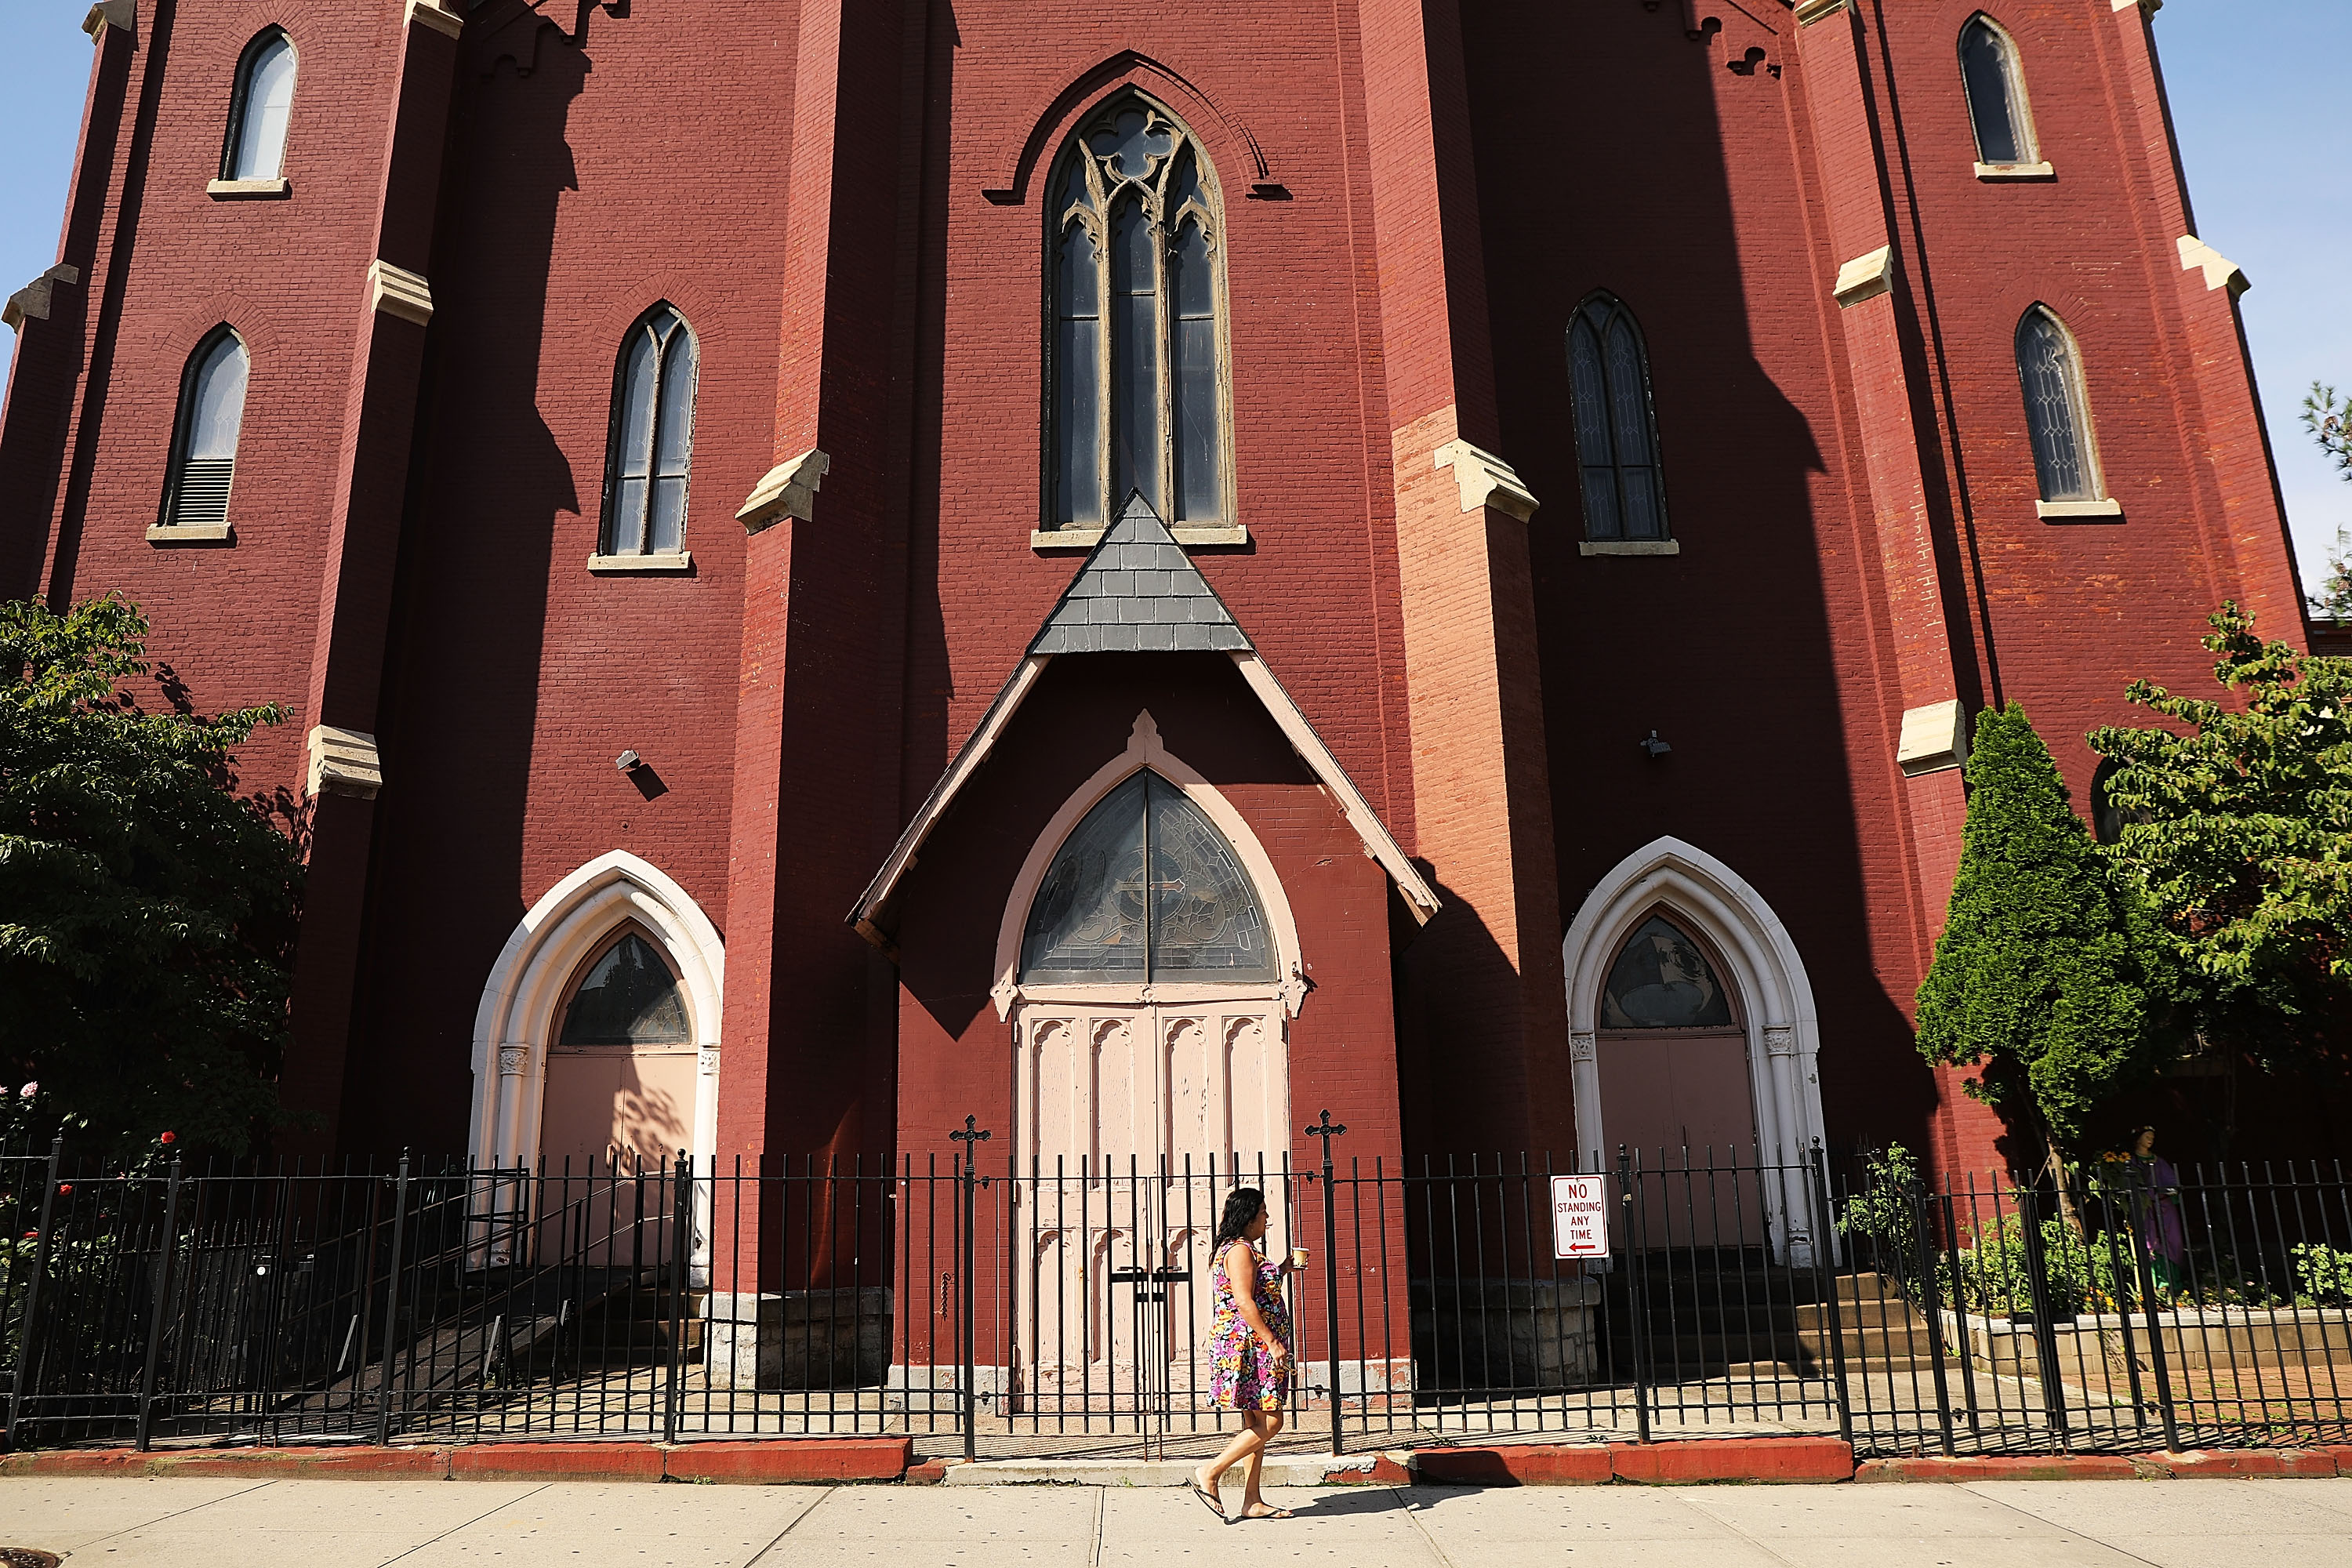 NEW YORK, NY - SEPTEMBER 19: St. Lucy's-St. Patrick's Church stands in Brooklyn on September 19, 2018 in New York City. (Spencer Platt/Getty Images)